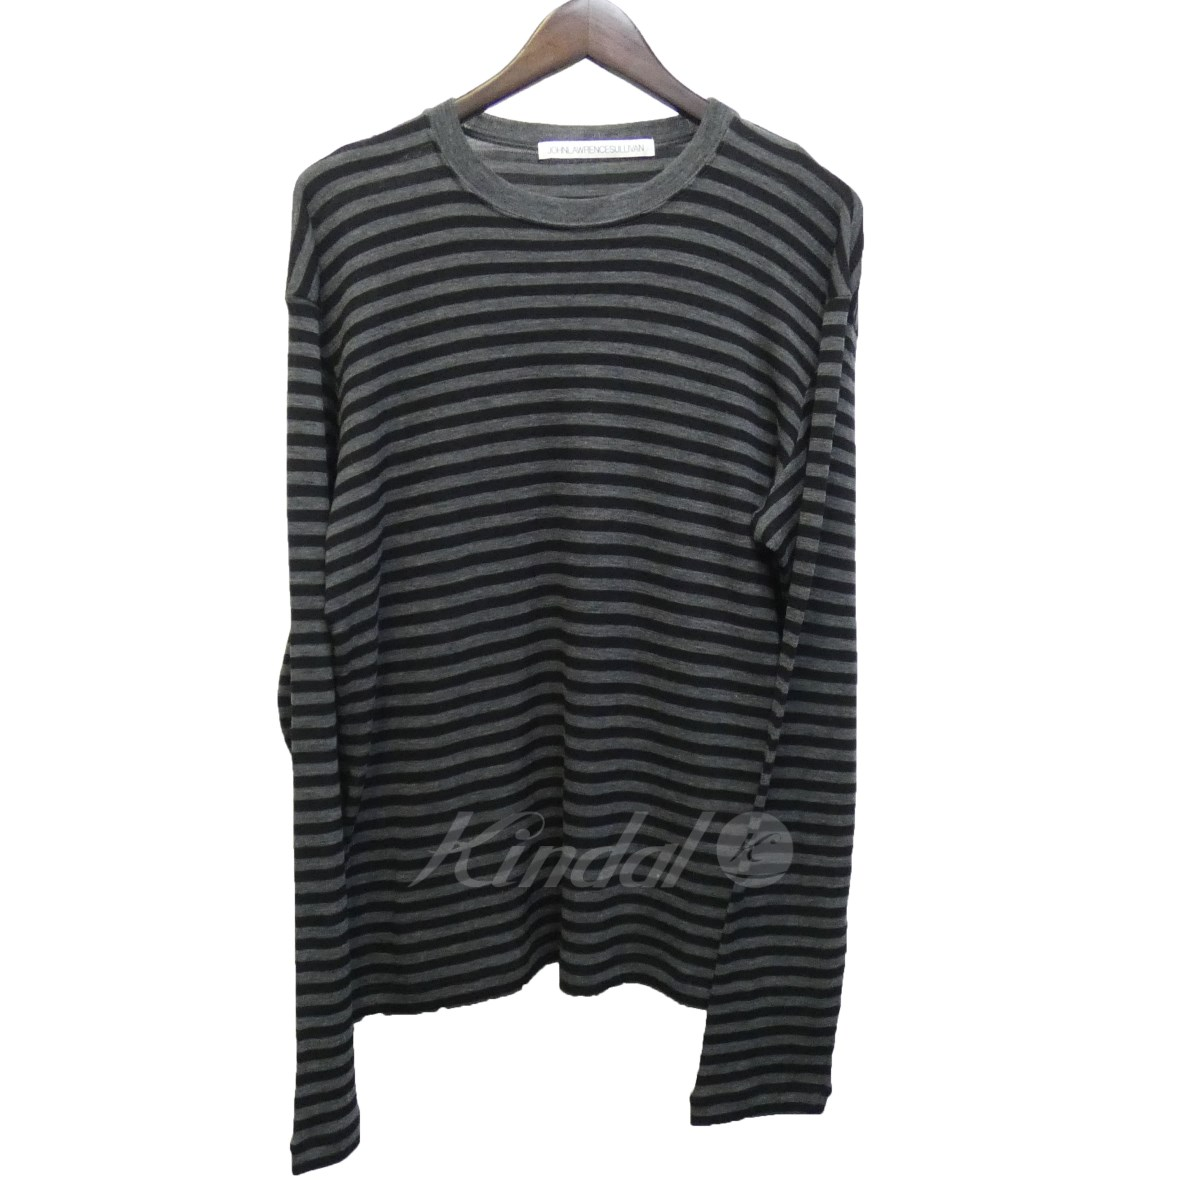 【中古】JOHN LAWRENCE SULLIVAN 18AW「CREW NECK TOP」ボーダーニット 【送料無料】 【107382】 【KIND1550】